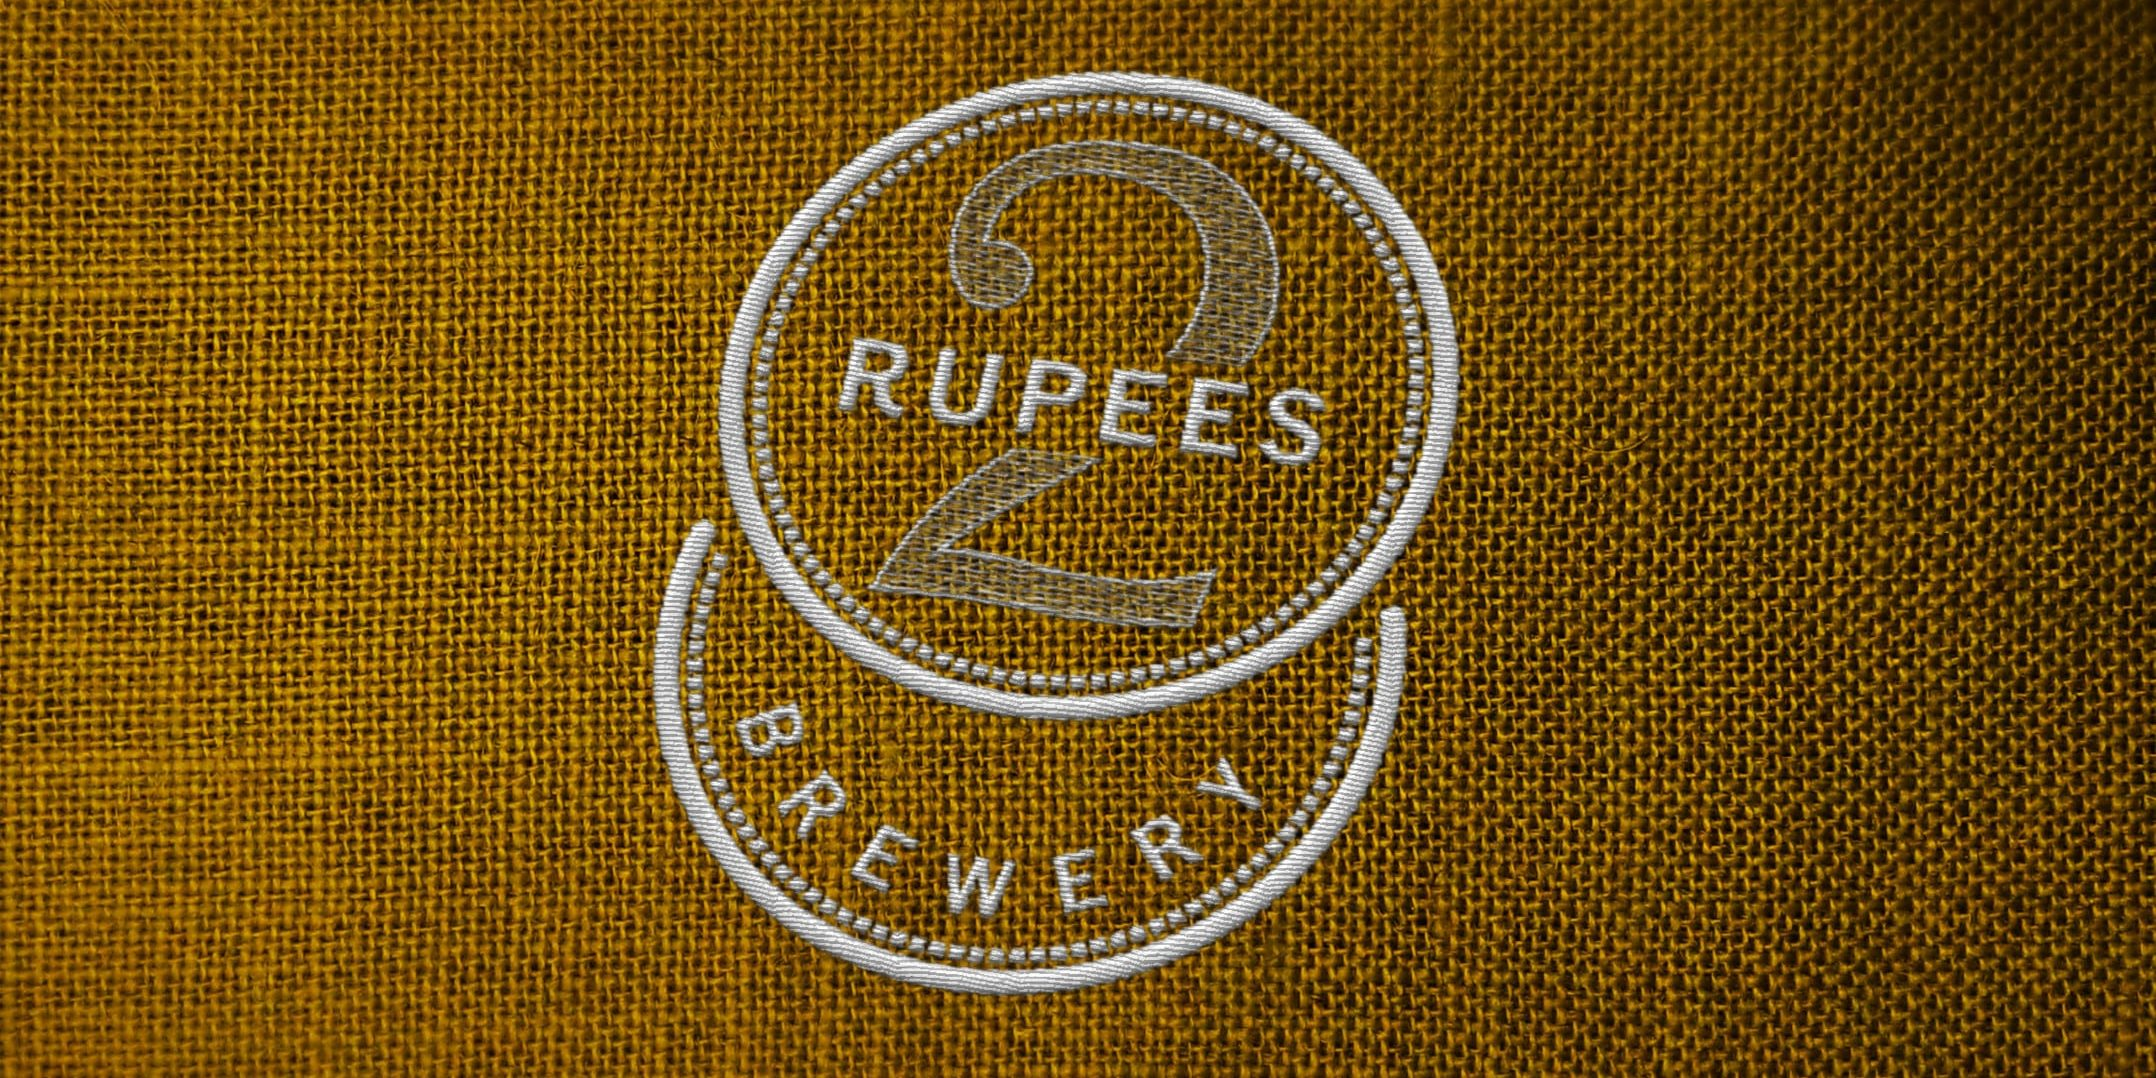 2 rupees